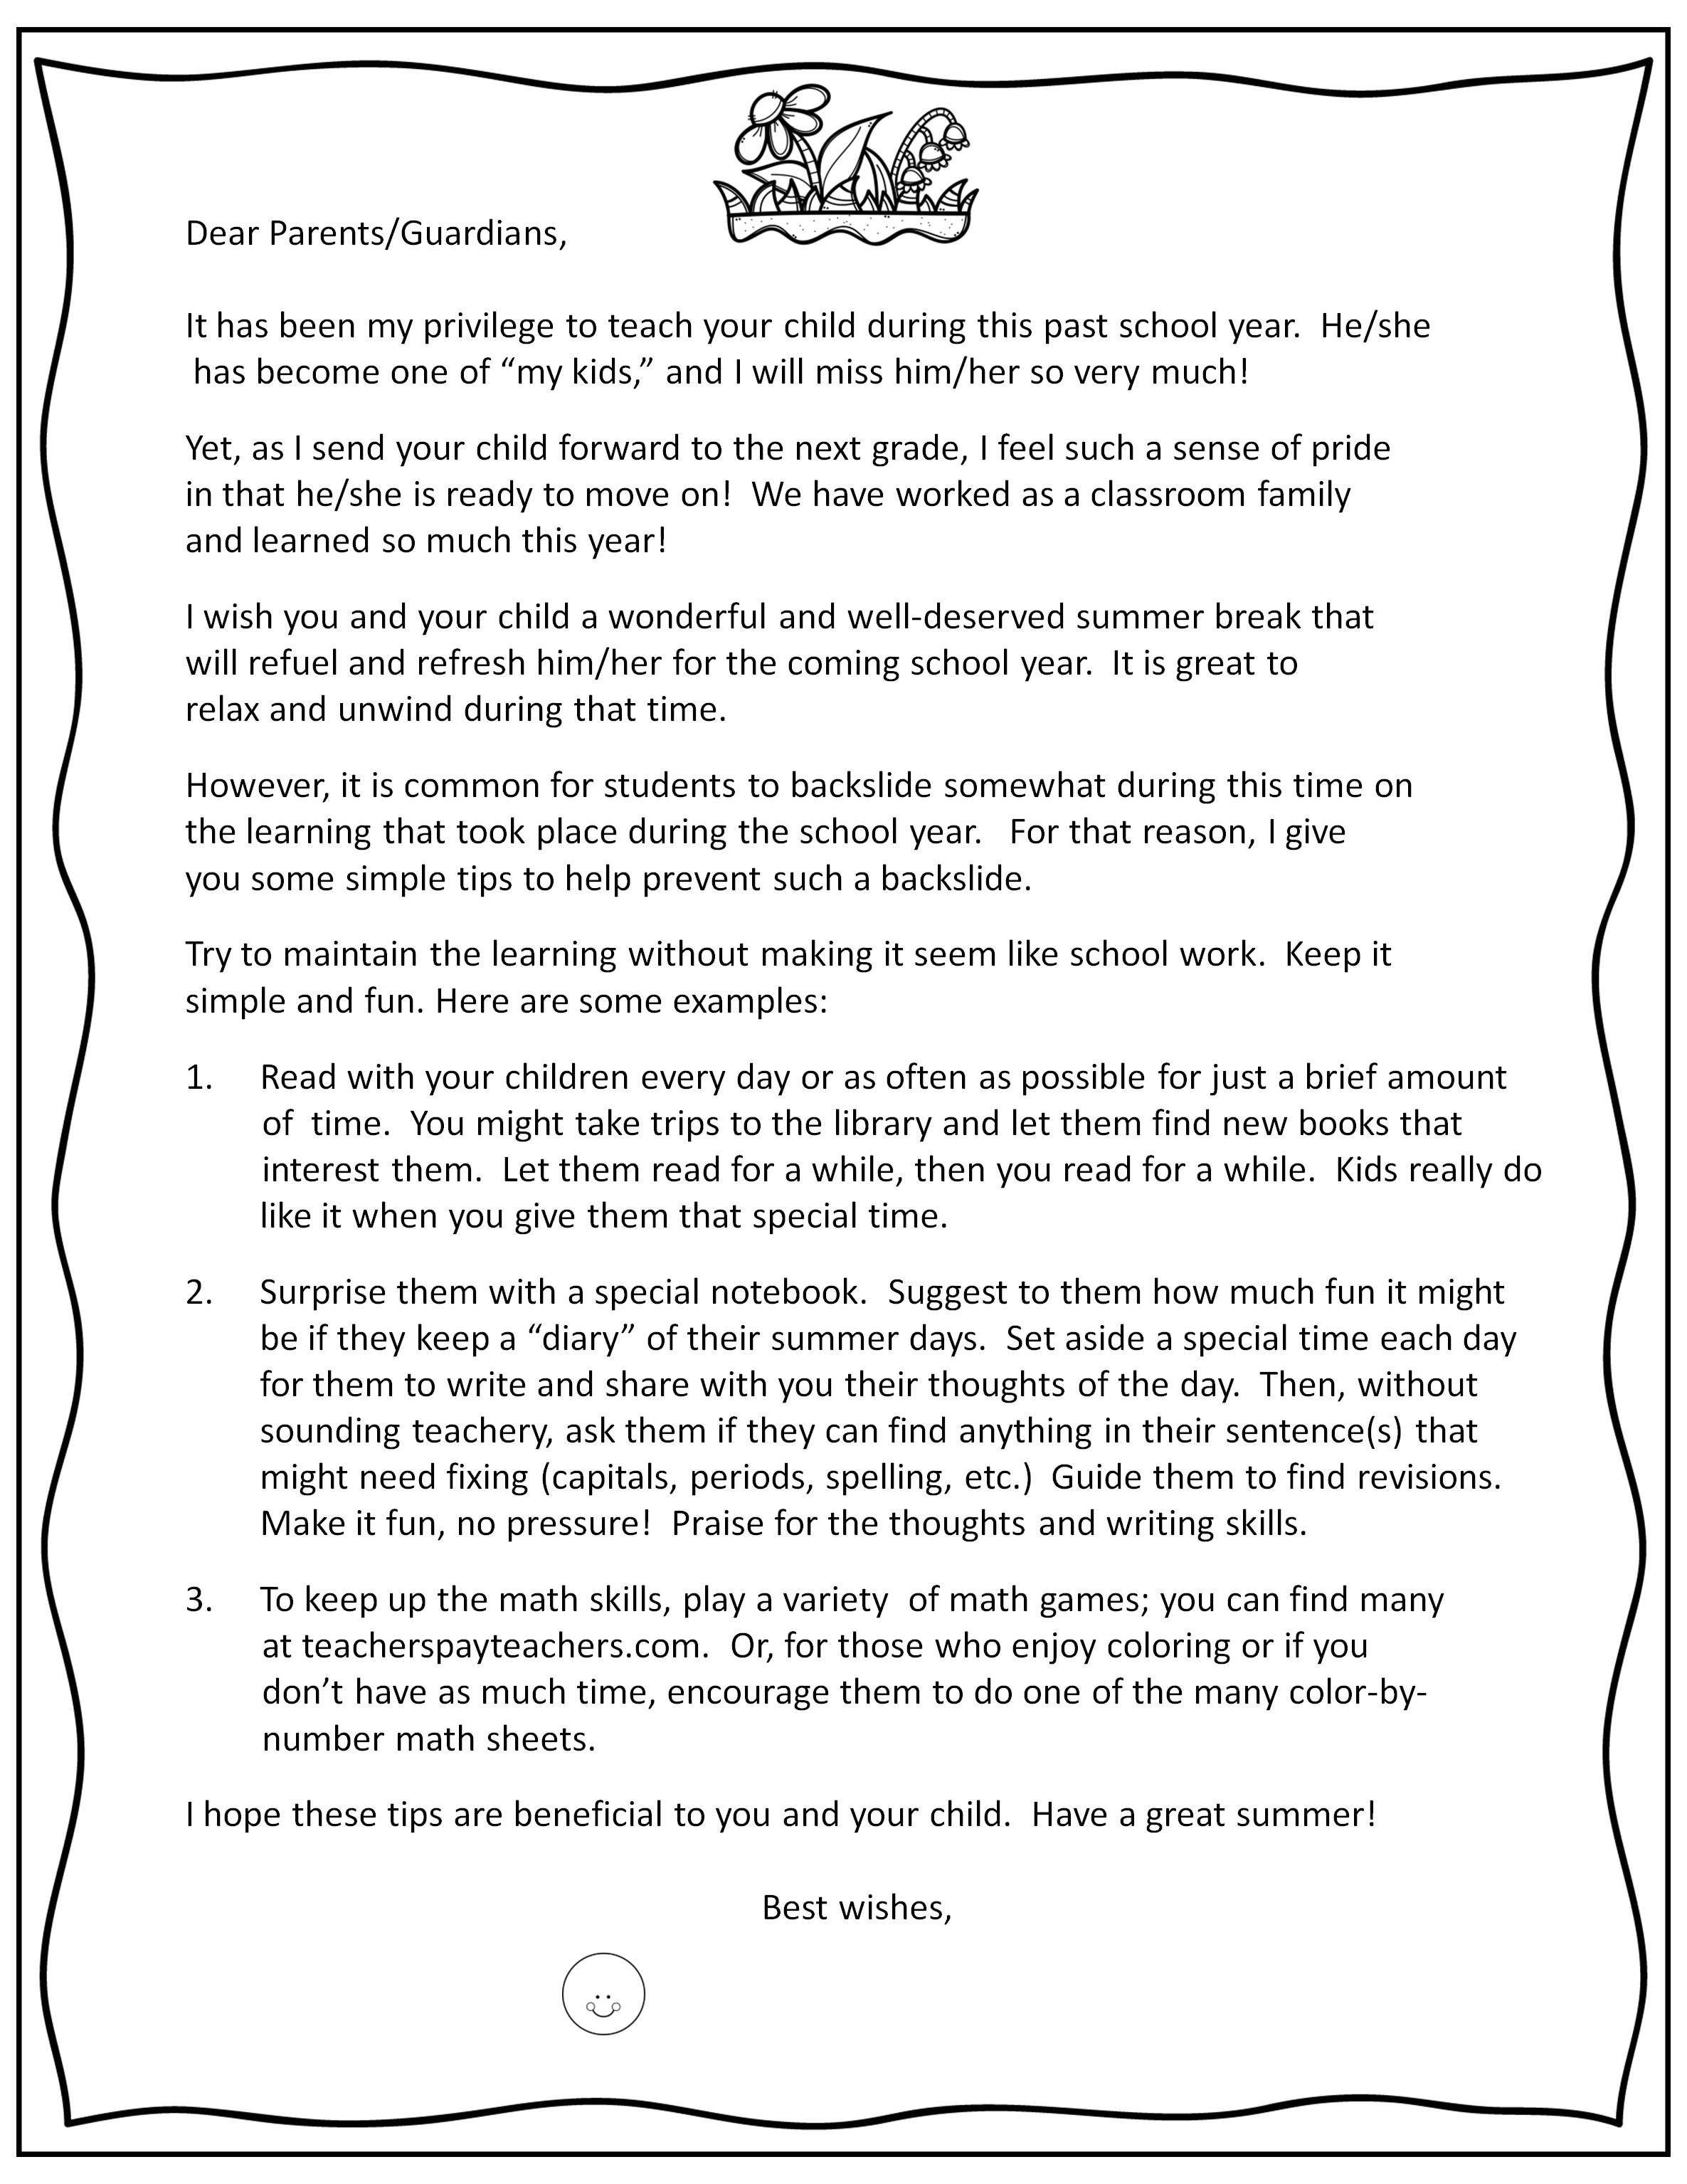 How To End A Letter To A Teacher From A Parent How To Wiki 89 As for me, i also spent a wonderful vacation. end a letter to a teacher from a parent